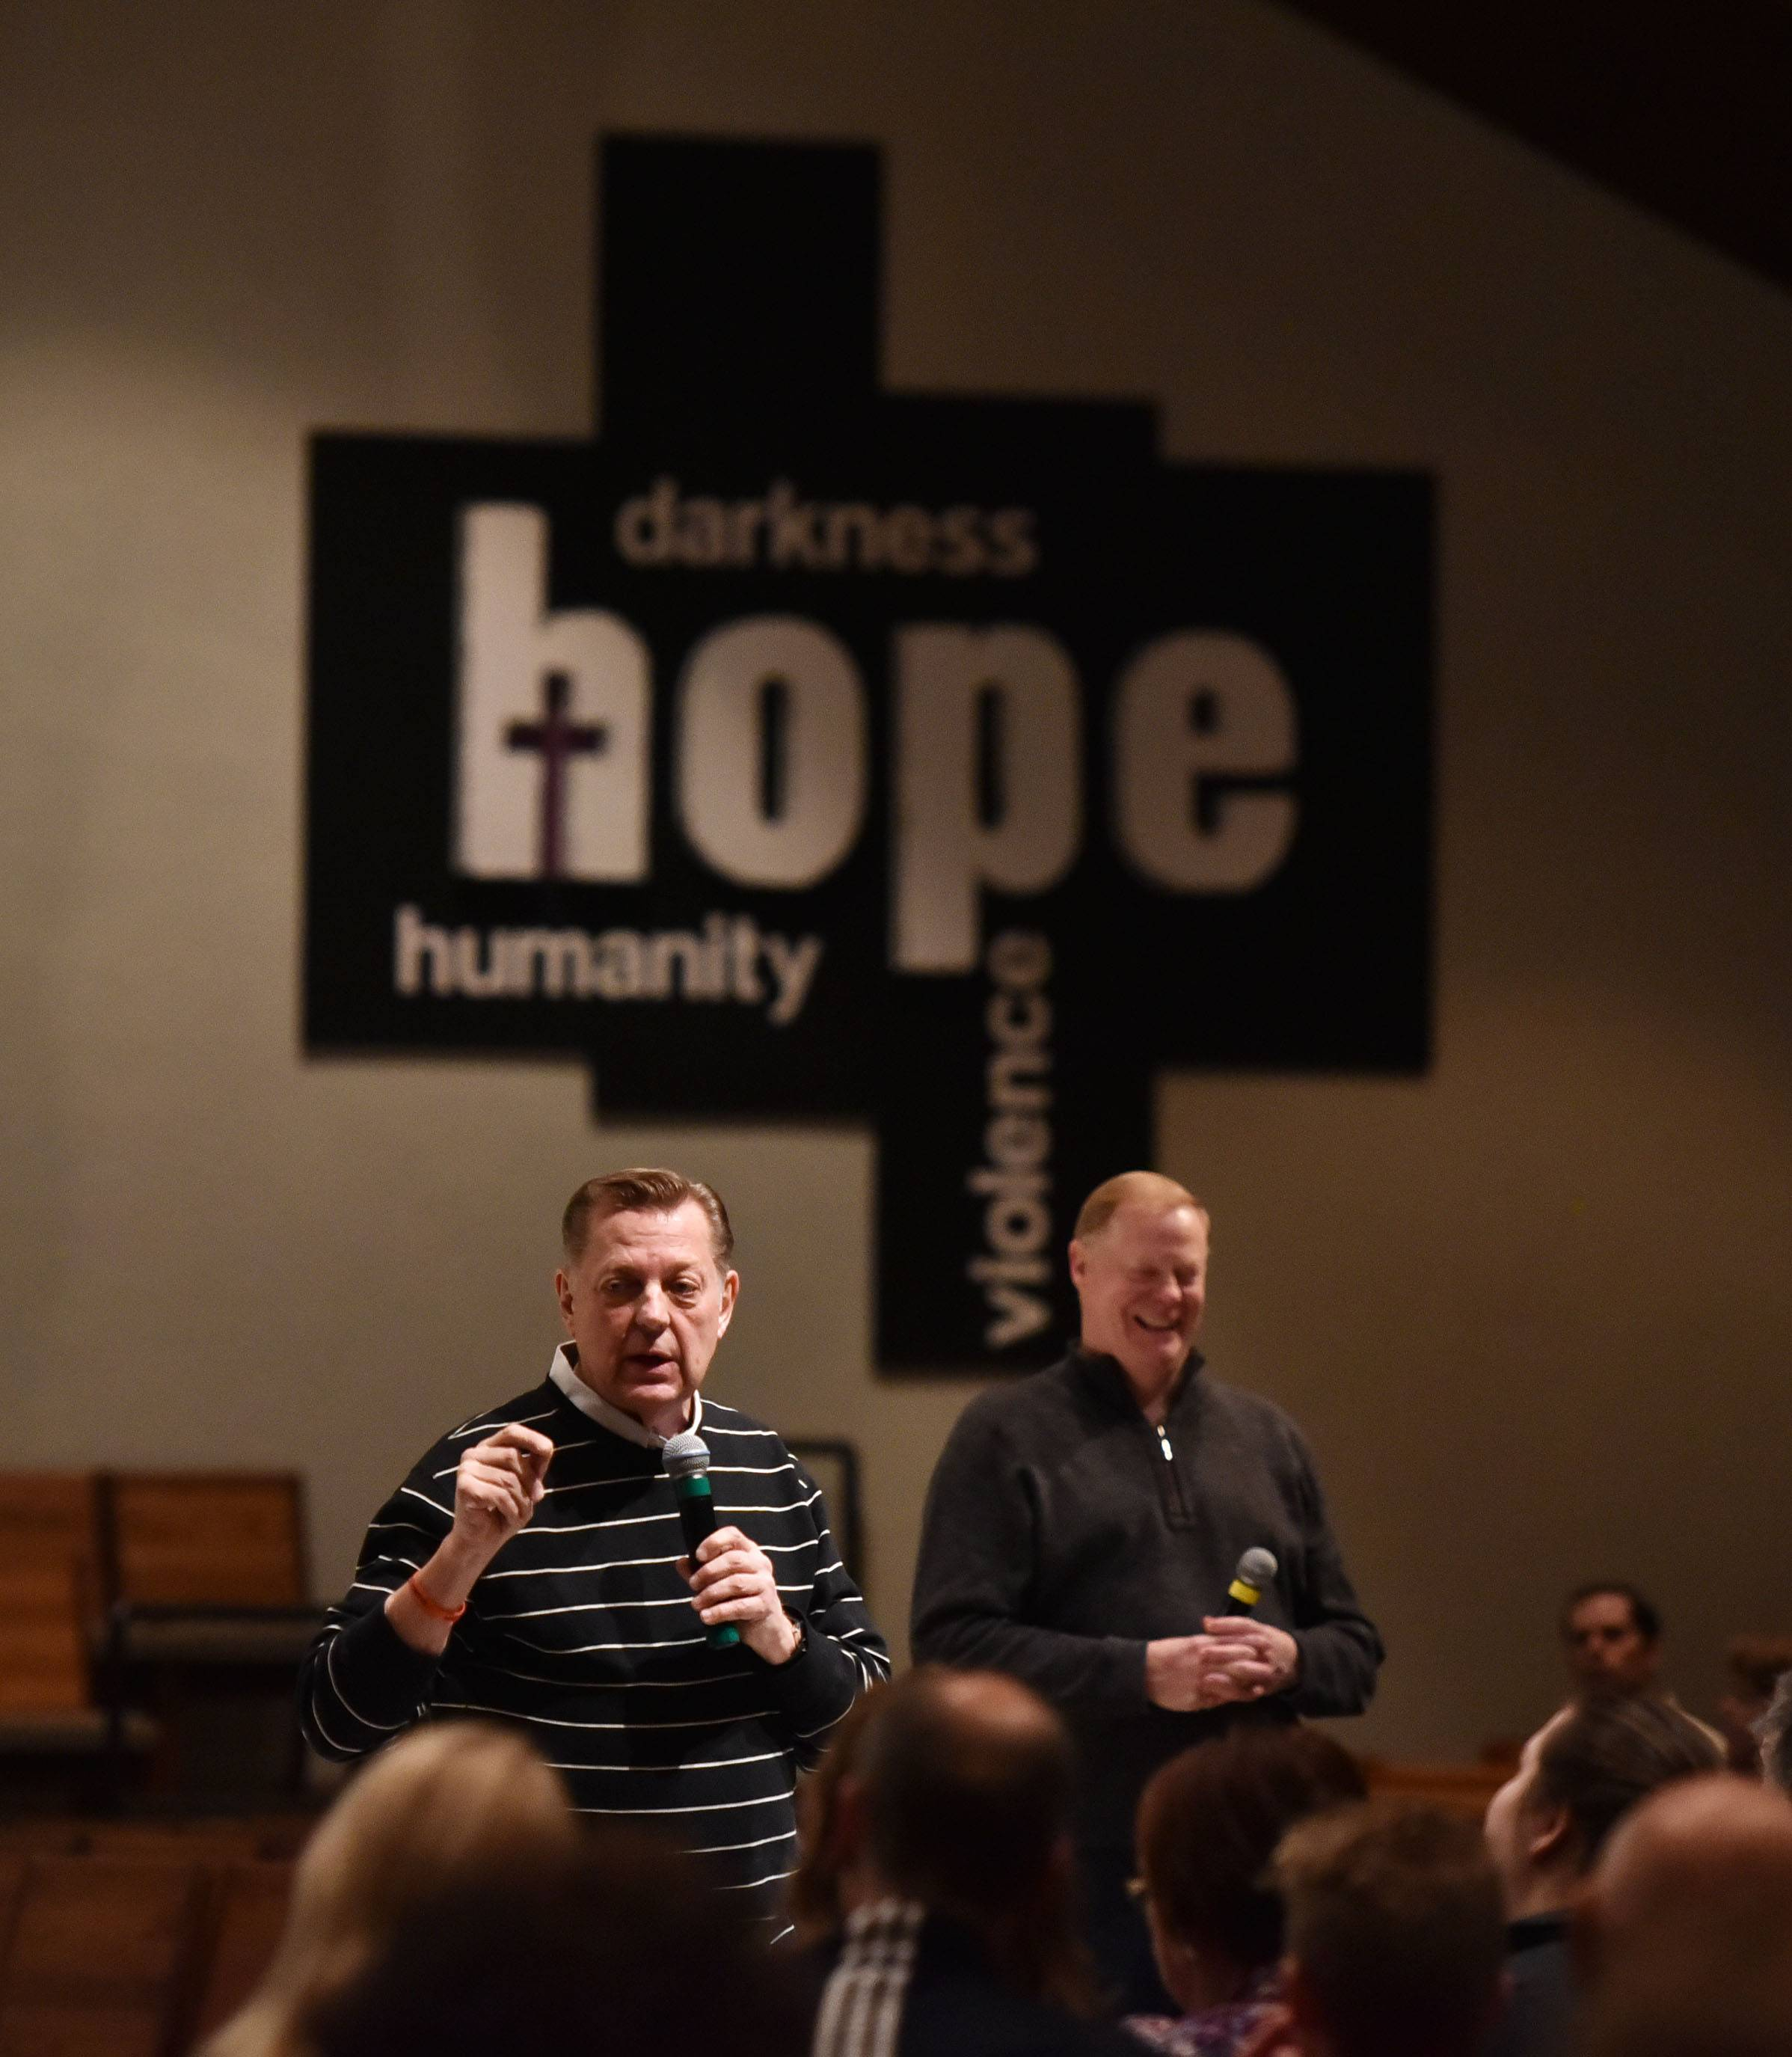 Chicago activist priest Michael Pfleger speaks at Holy Family Catholic Community Church in Inverness Thursday night about his Strong Futures Program. Behind him is the Rev. Terry Keehan, pastor of Holy Family.